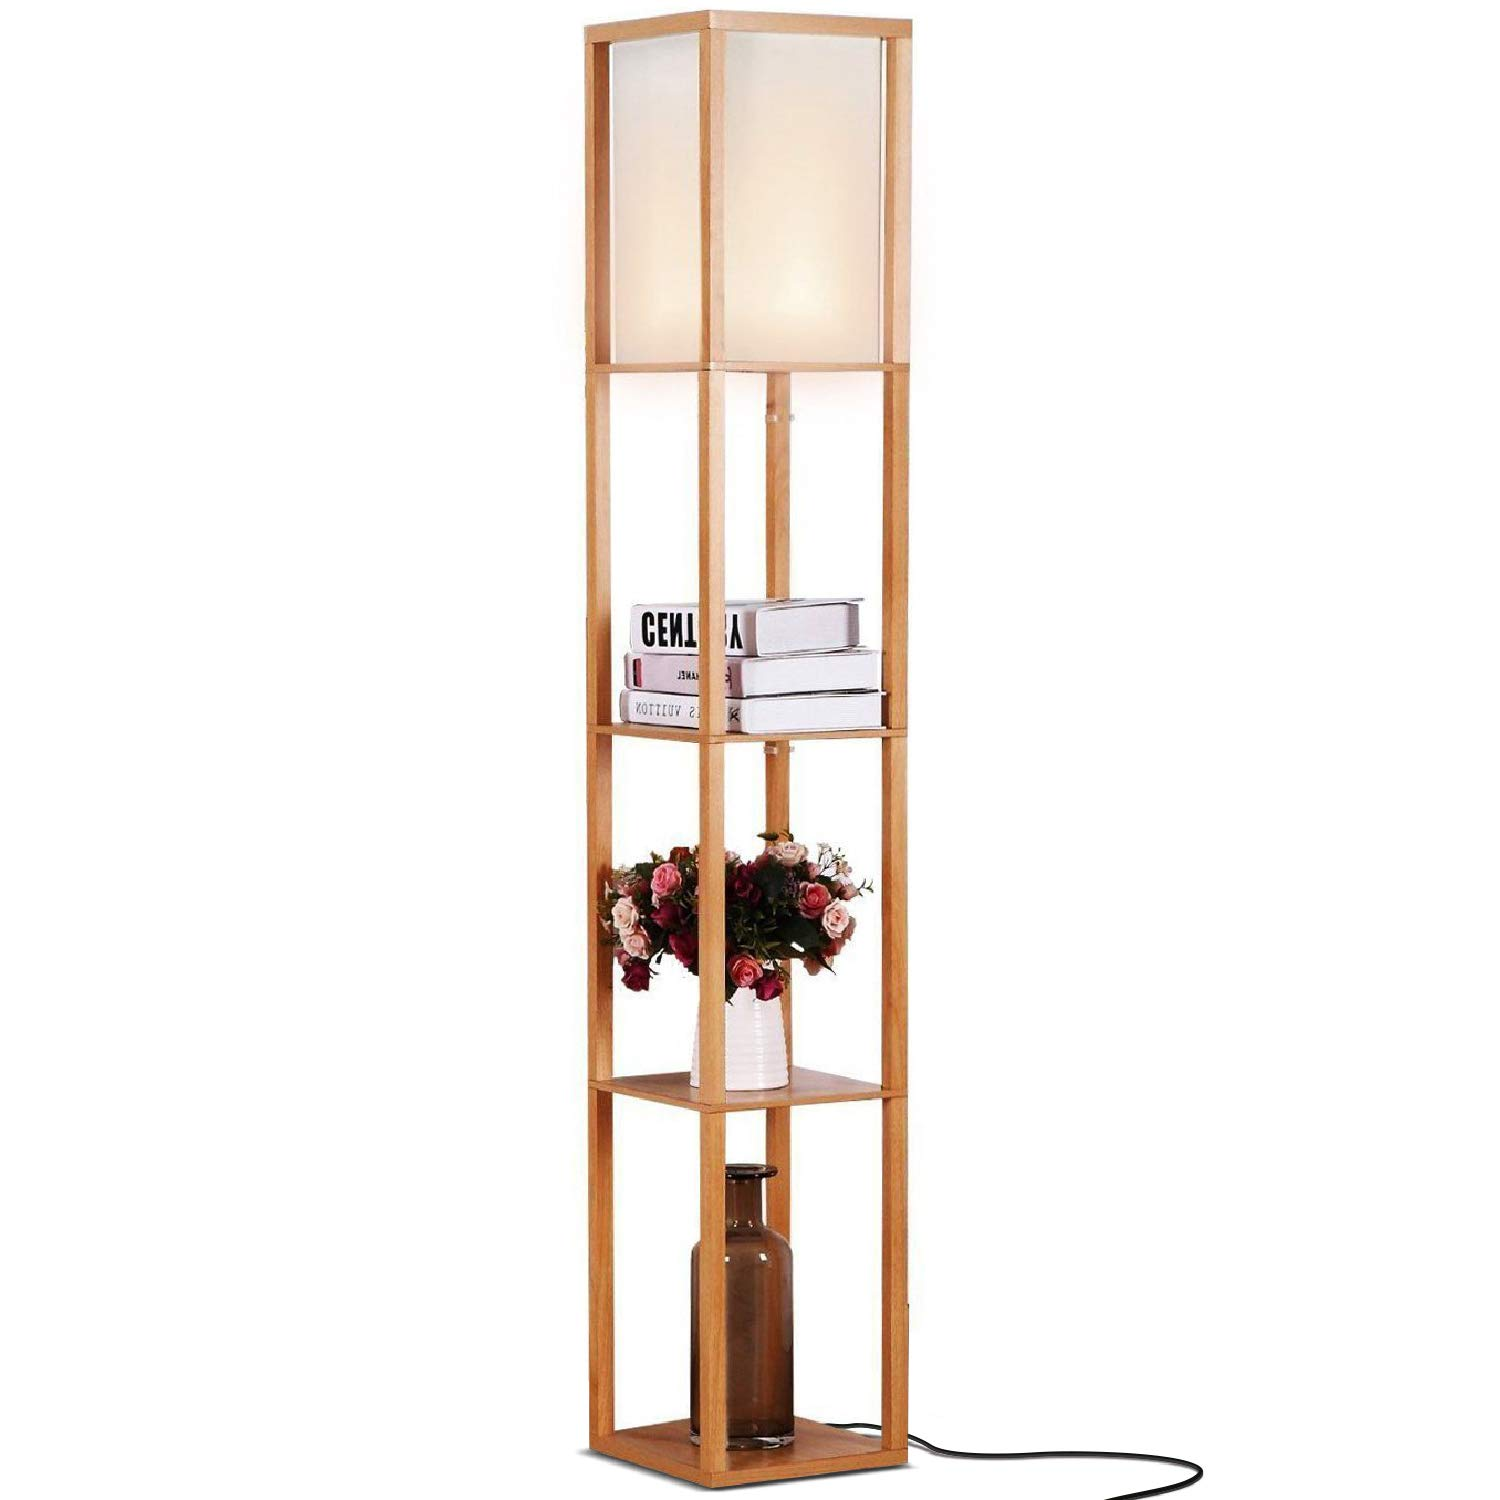 Brightech Maxwell - LED Shelf Floor Lamp - Modern Standing Light for Living Rooms & Bedrooms - Asian Wooden Frame with Open Box Display Shelves - Natural Wood by Brightech